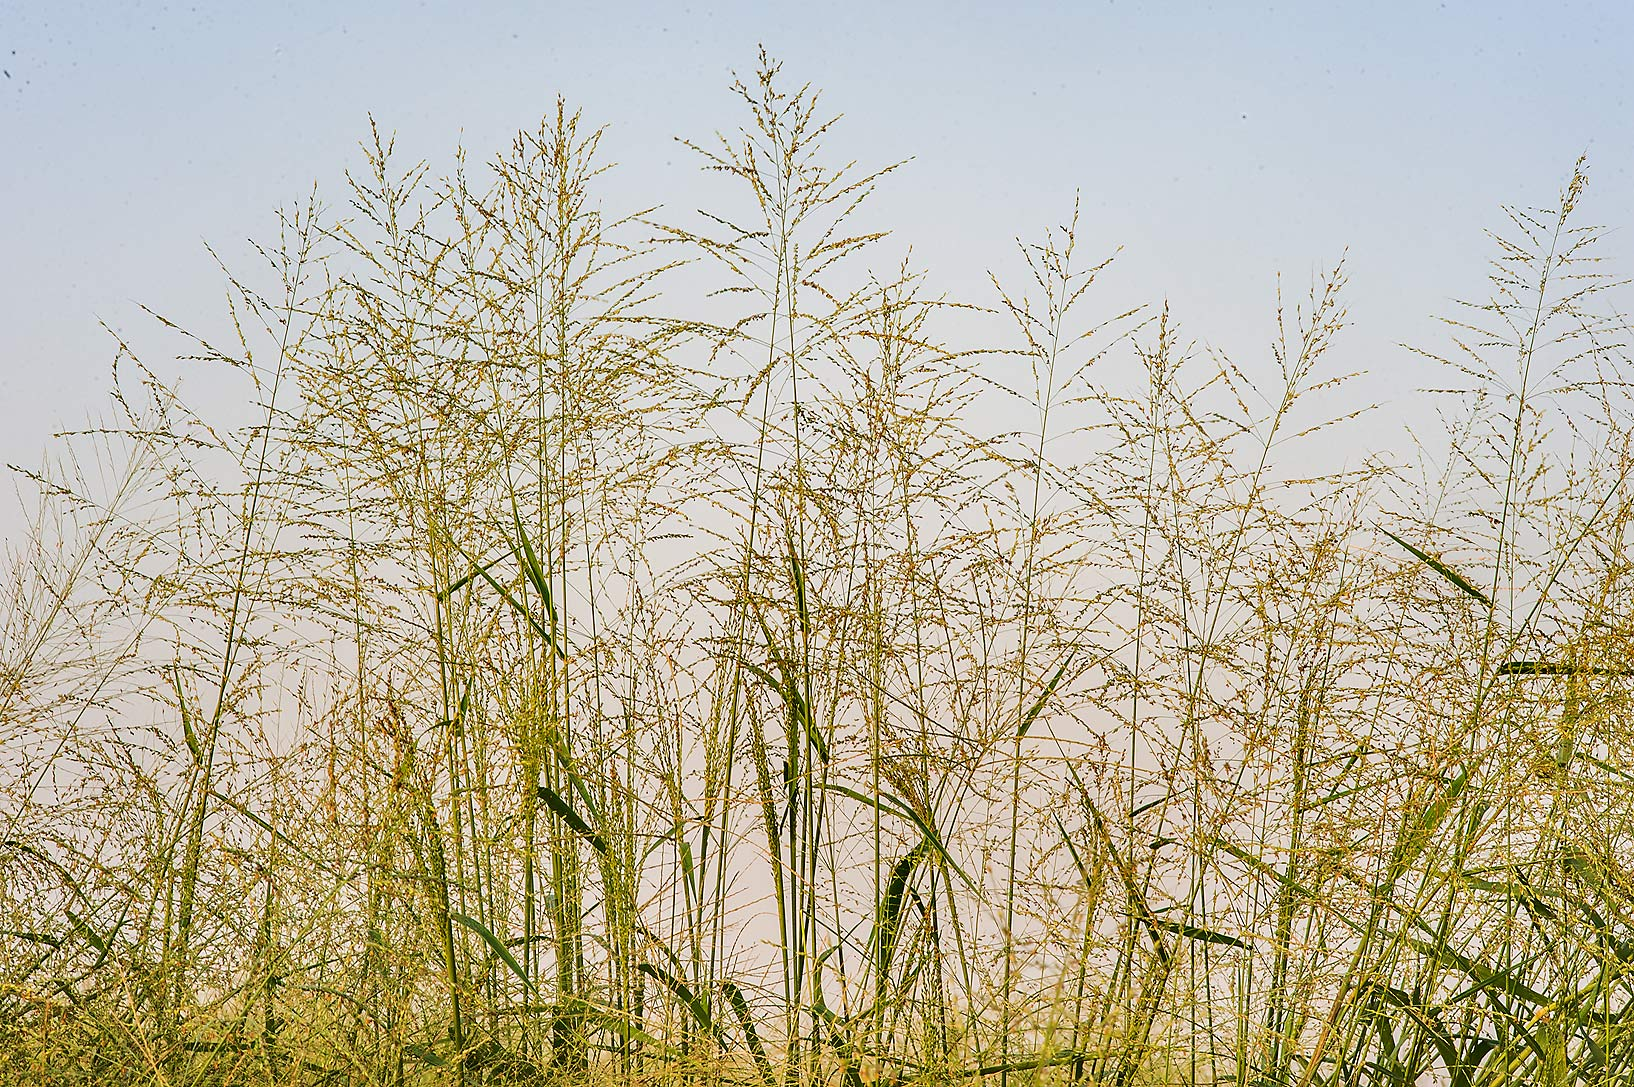 Kleingrass (blue panicgrass, Panicum coloratum...in Irkhaya (Irkaya) Farms. Qatar